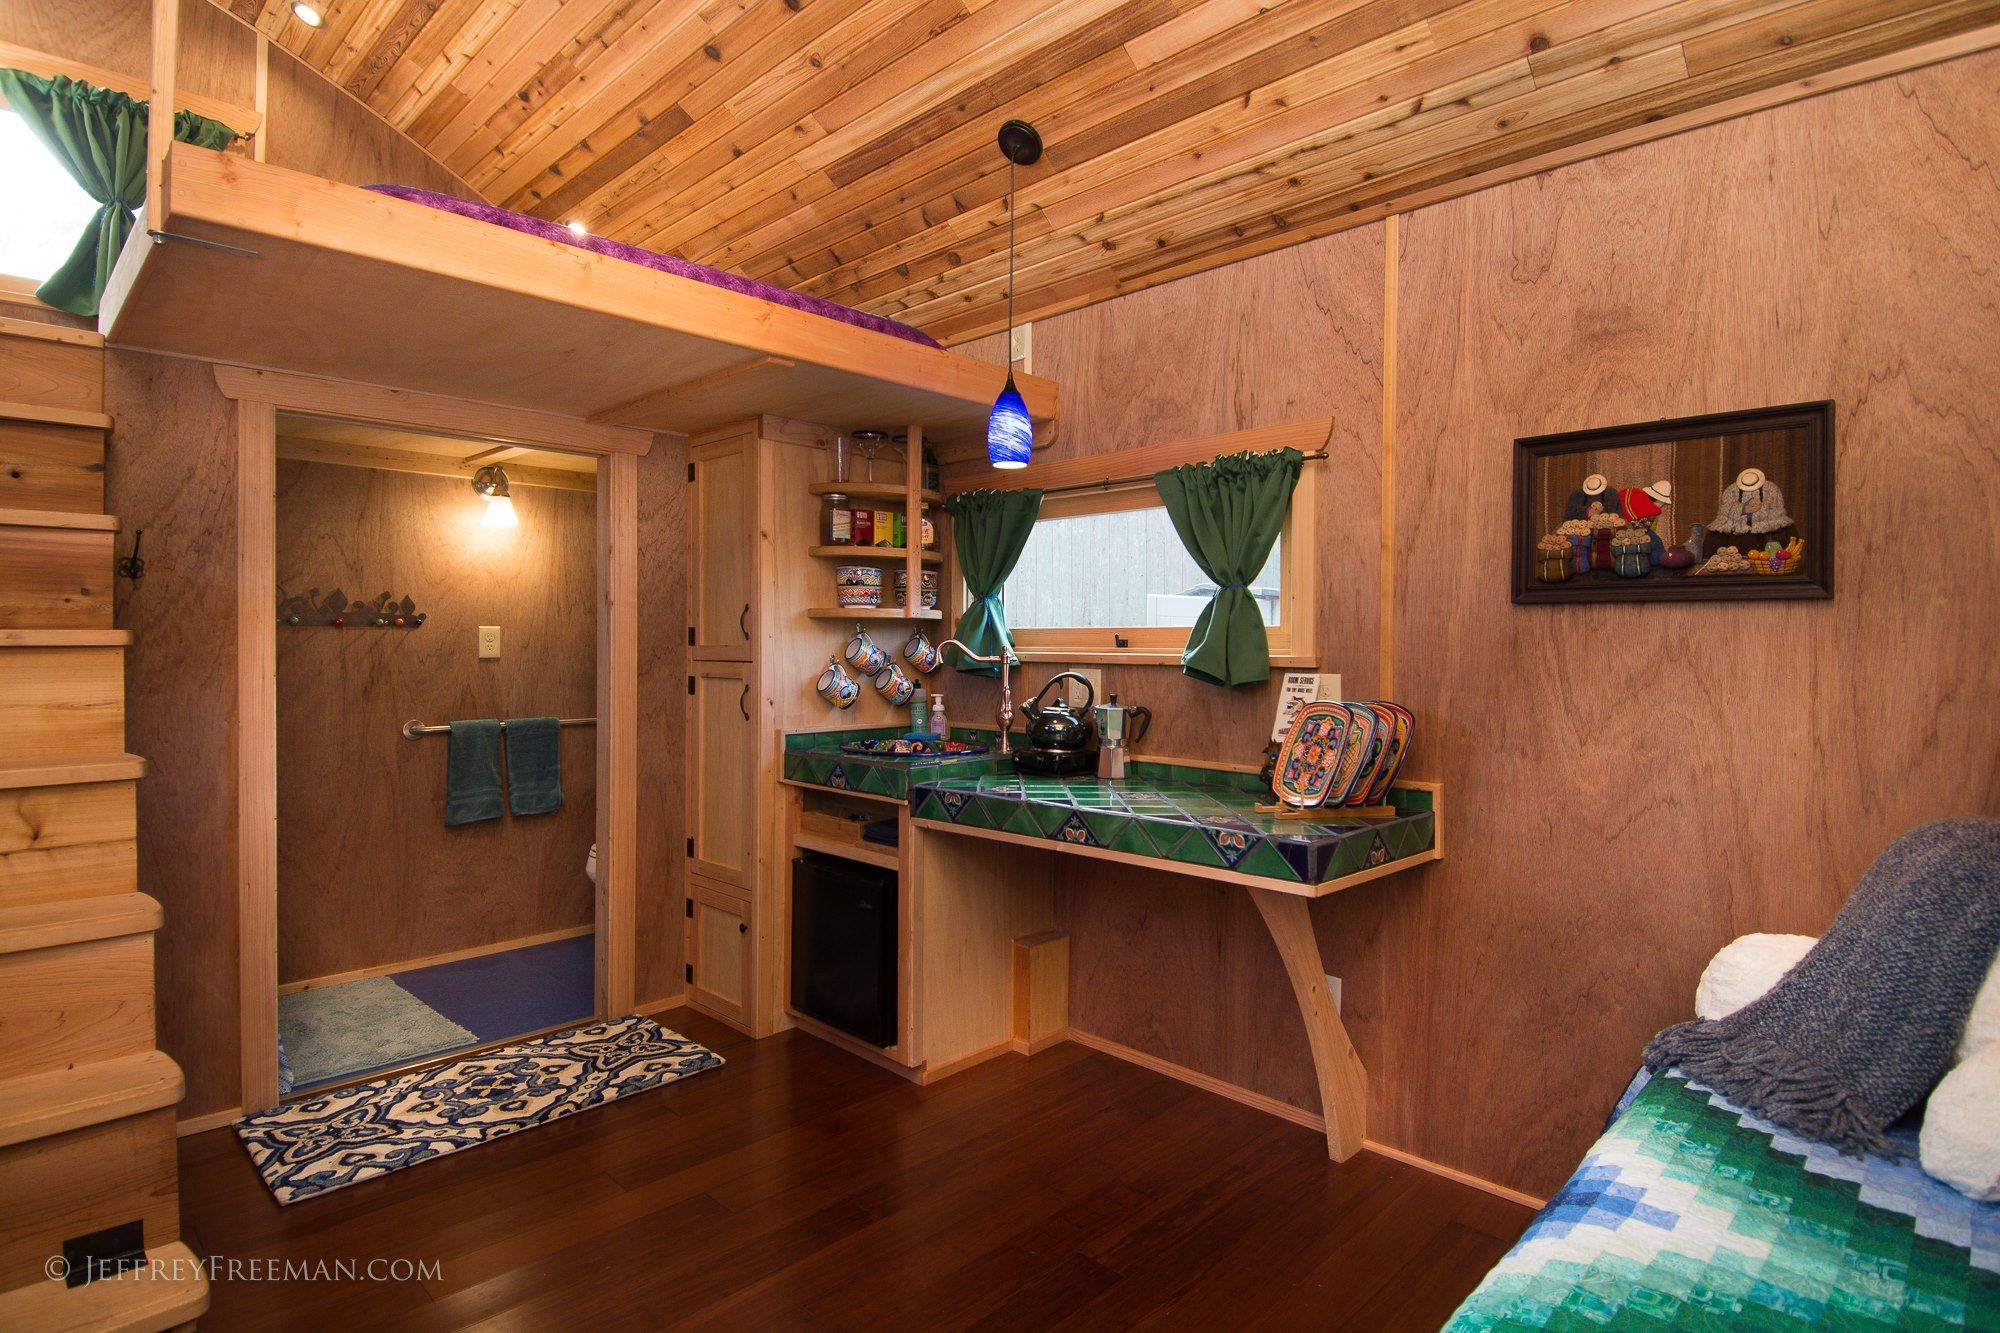 tiny house hotel pacifica 3 - The Hotel 大篷车 welcomes new wheelchair accessible tiny house